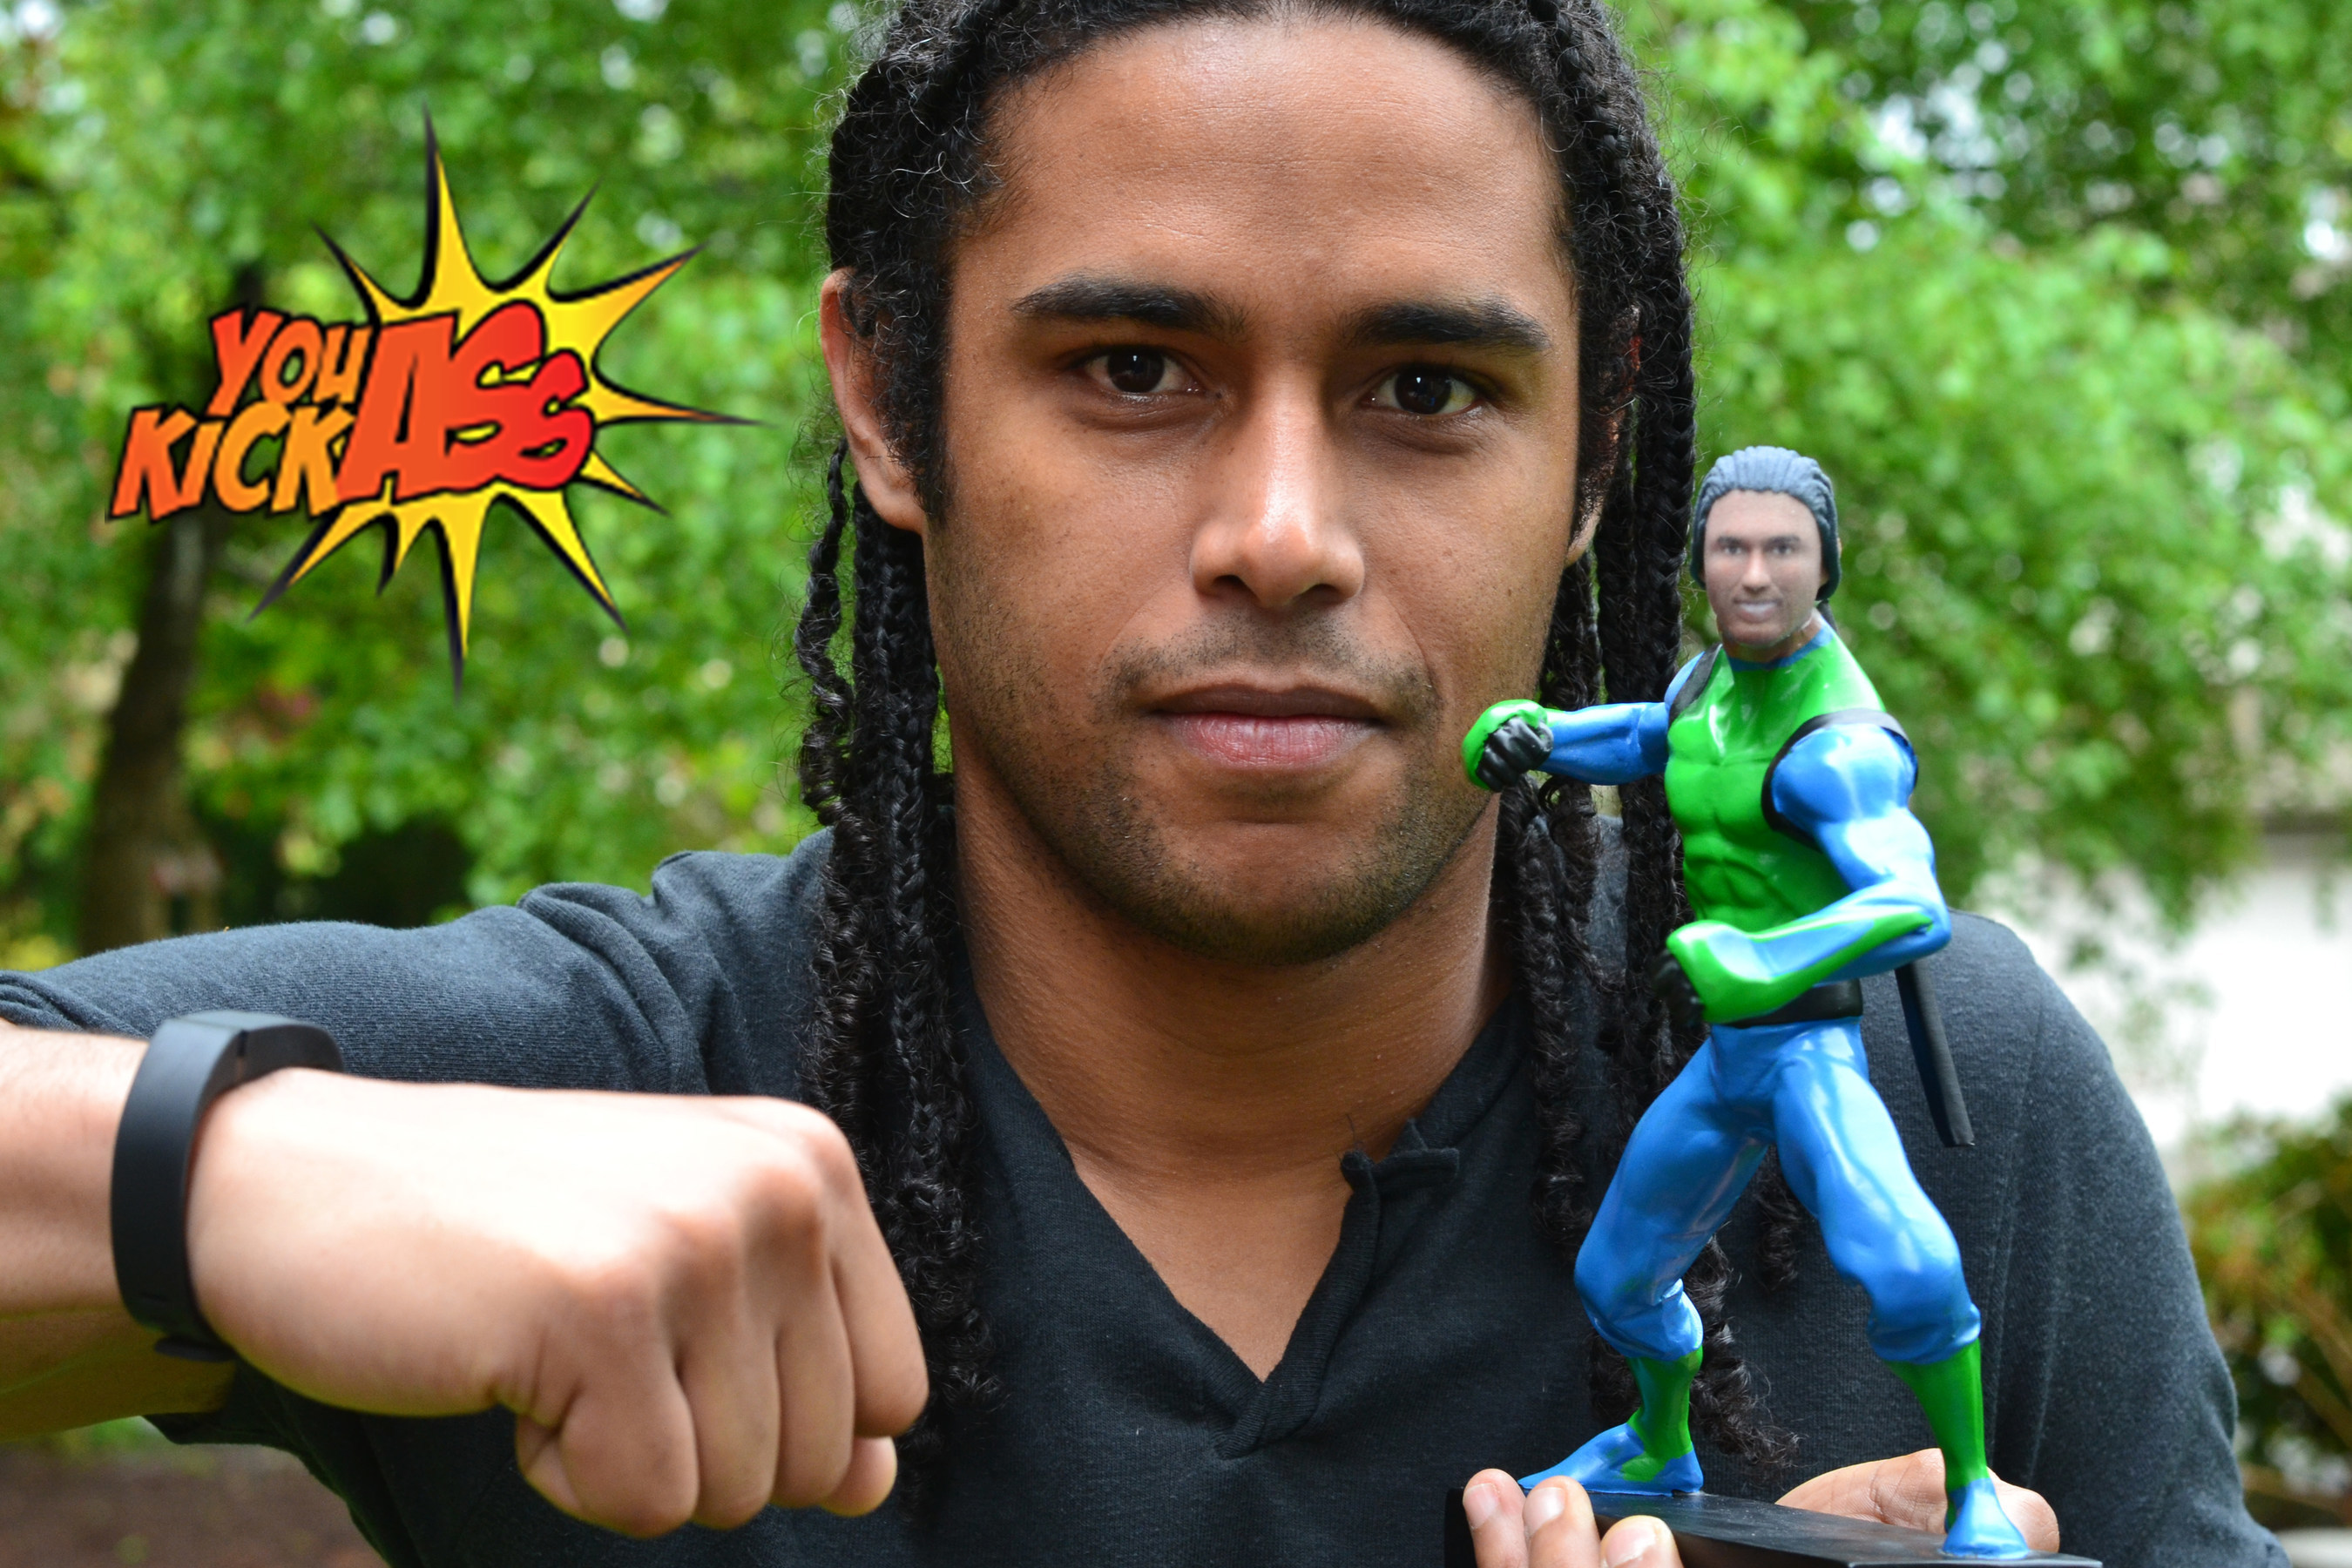 Through the magic and advancements in 3D printing, highly customized YOU KICK ASS action figures are now available for the hero in your life!